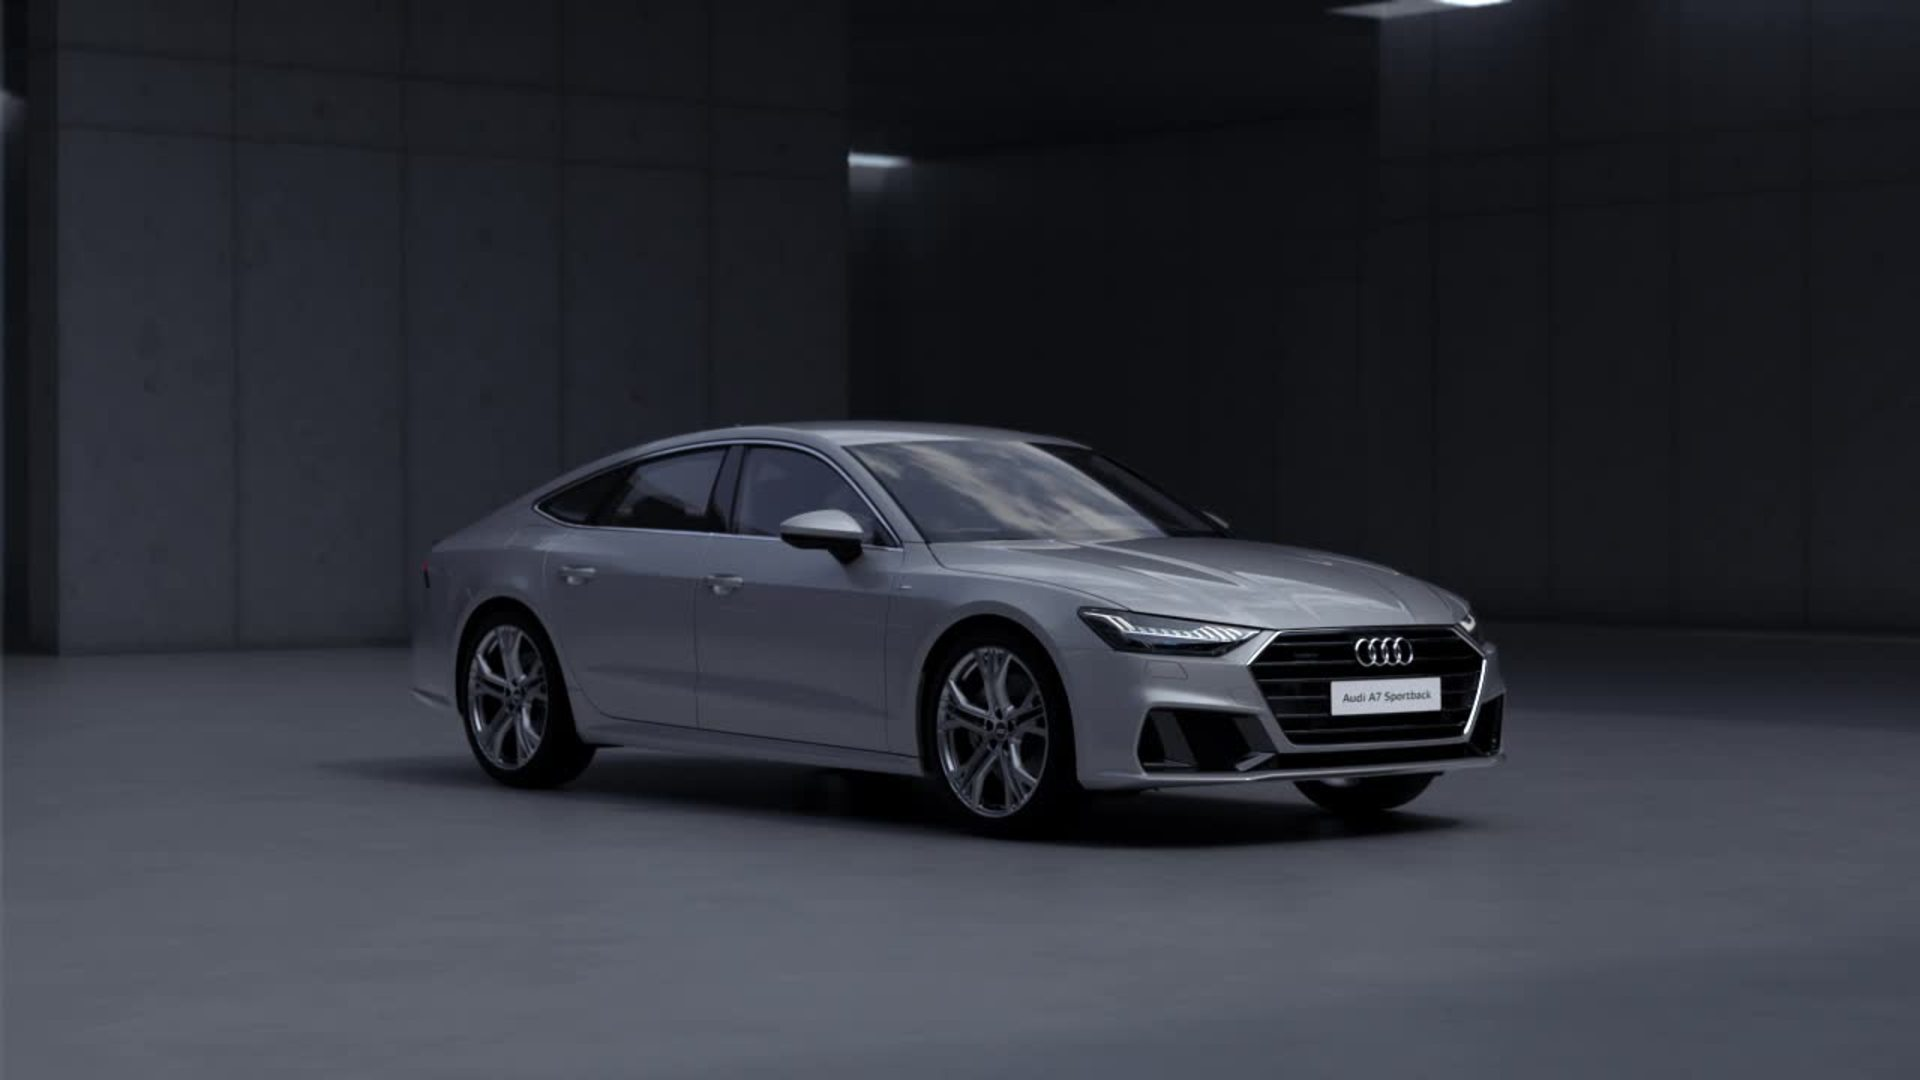 Animation Audi A7 exterior design